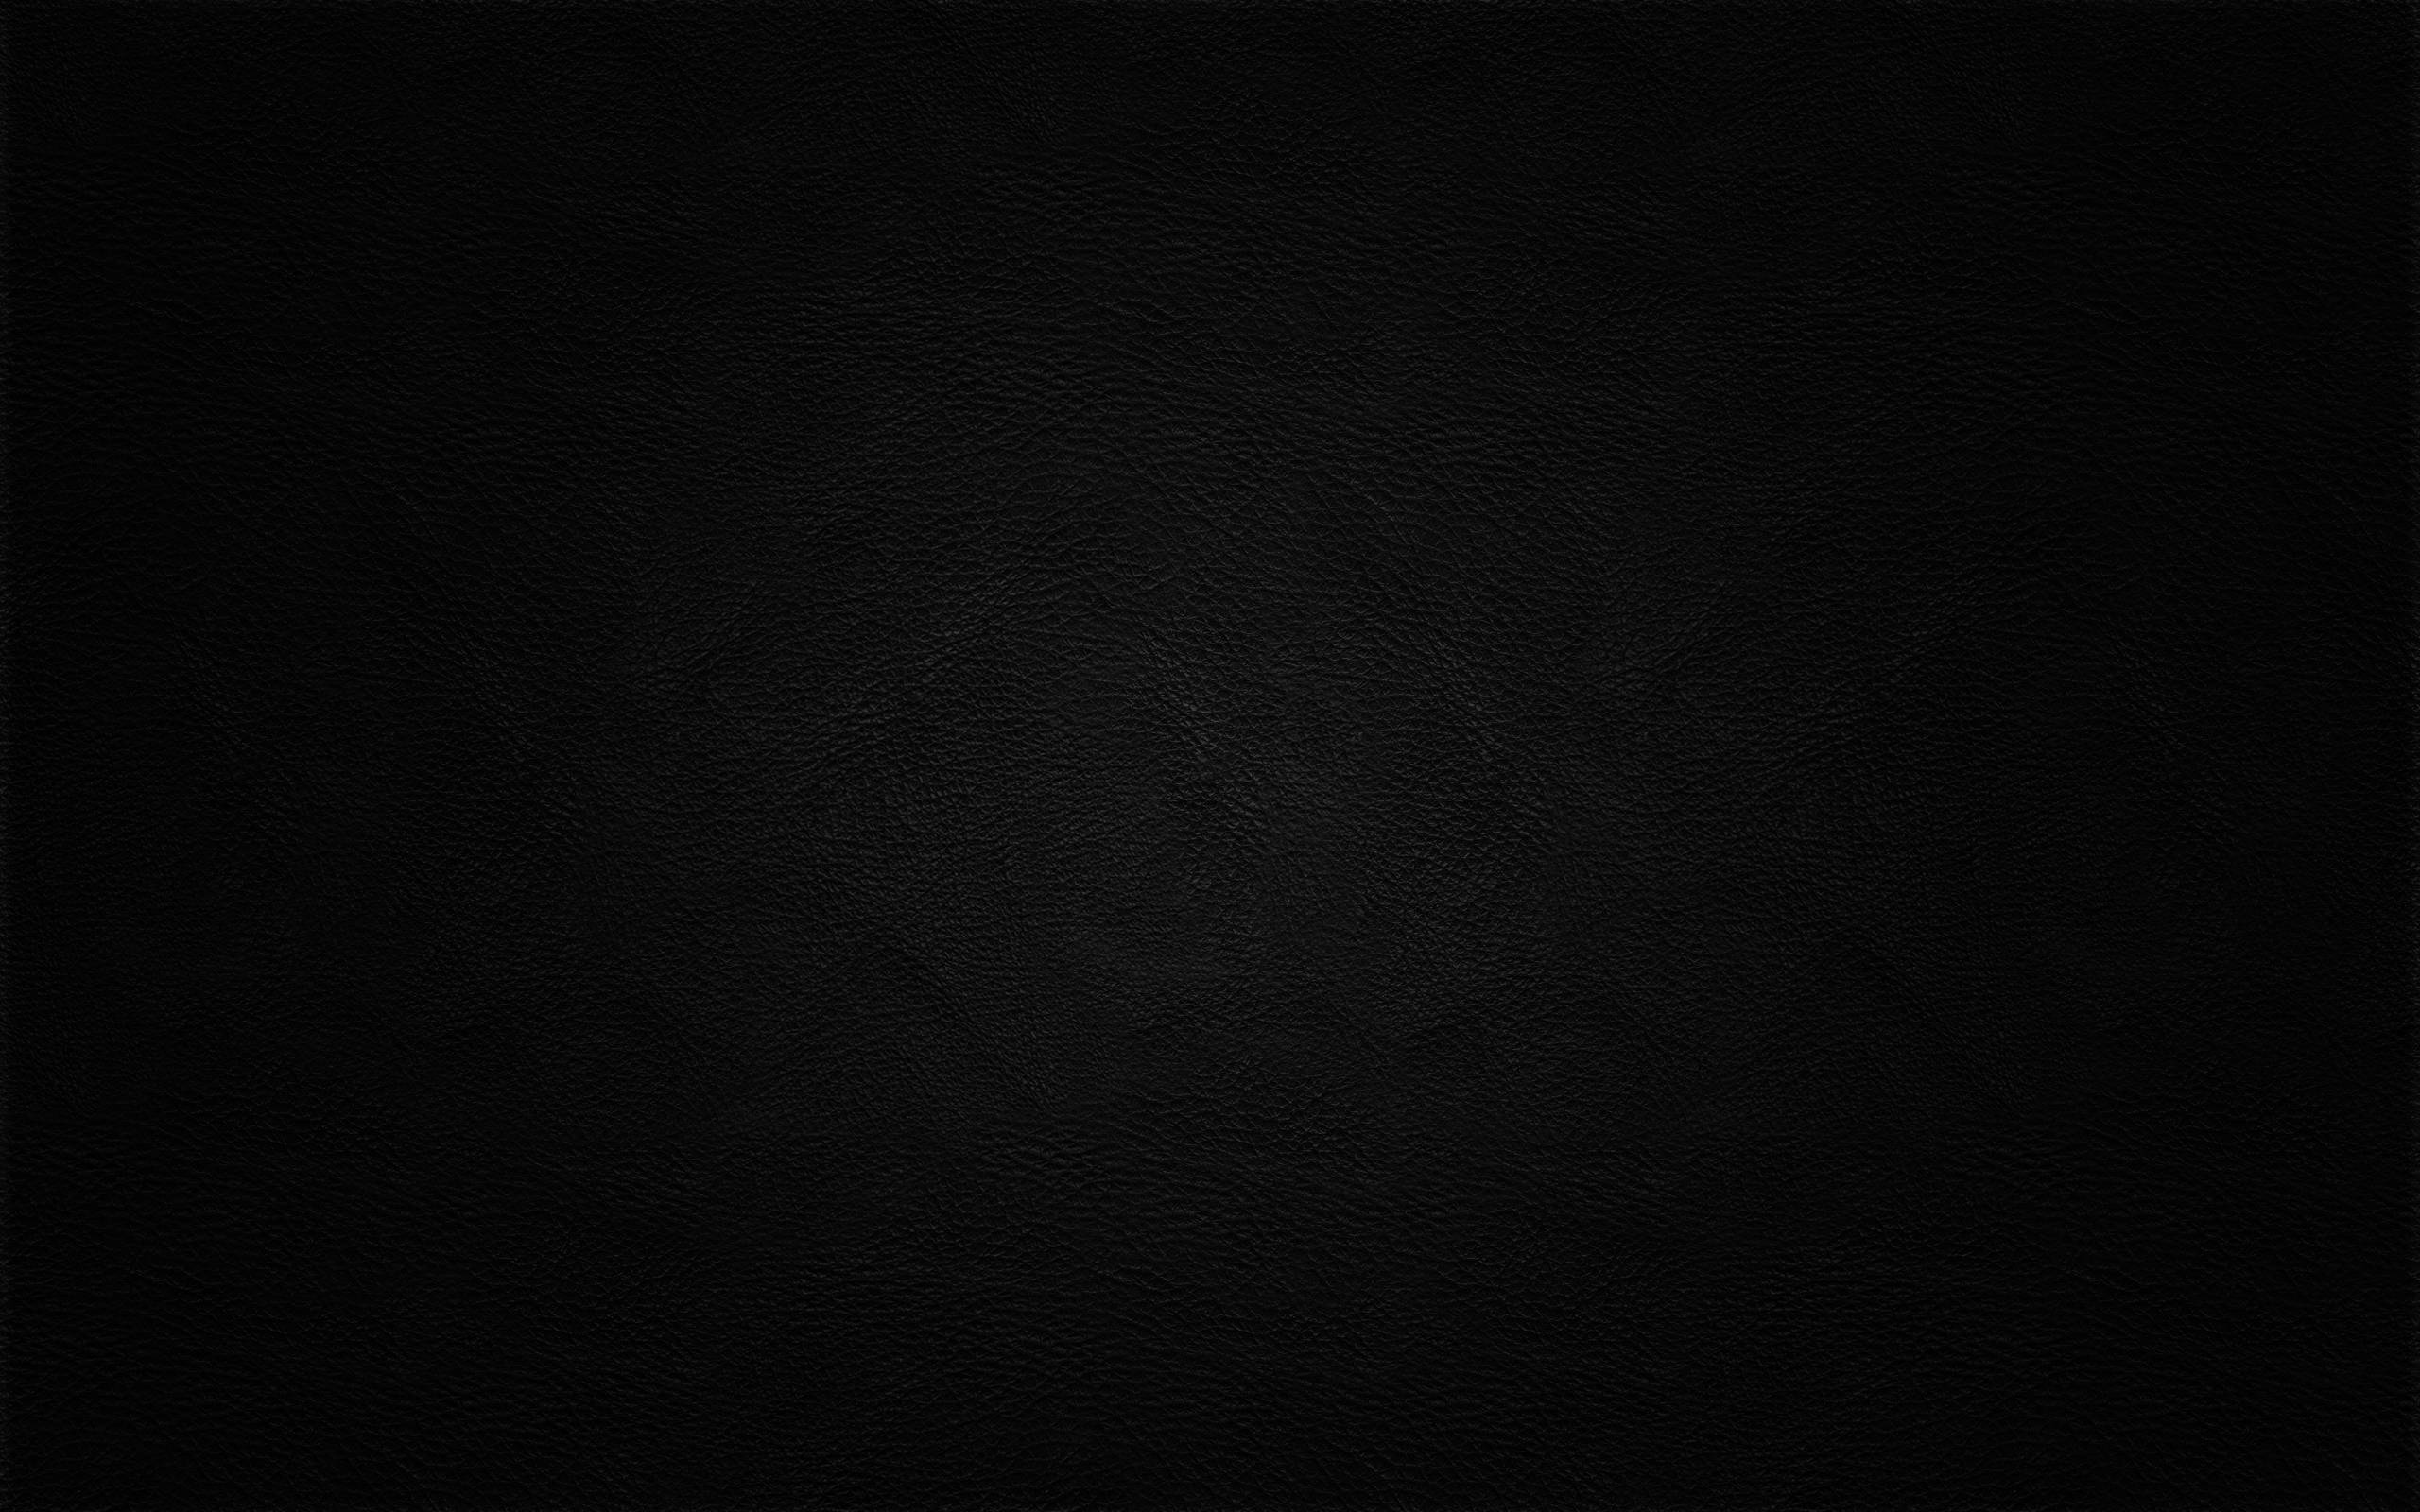 Full black wallpapers wallpaper cave - Black and white hd wallpapers black background ...